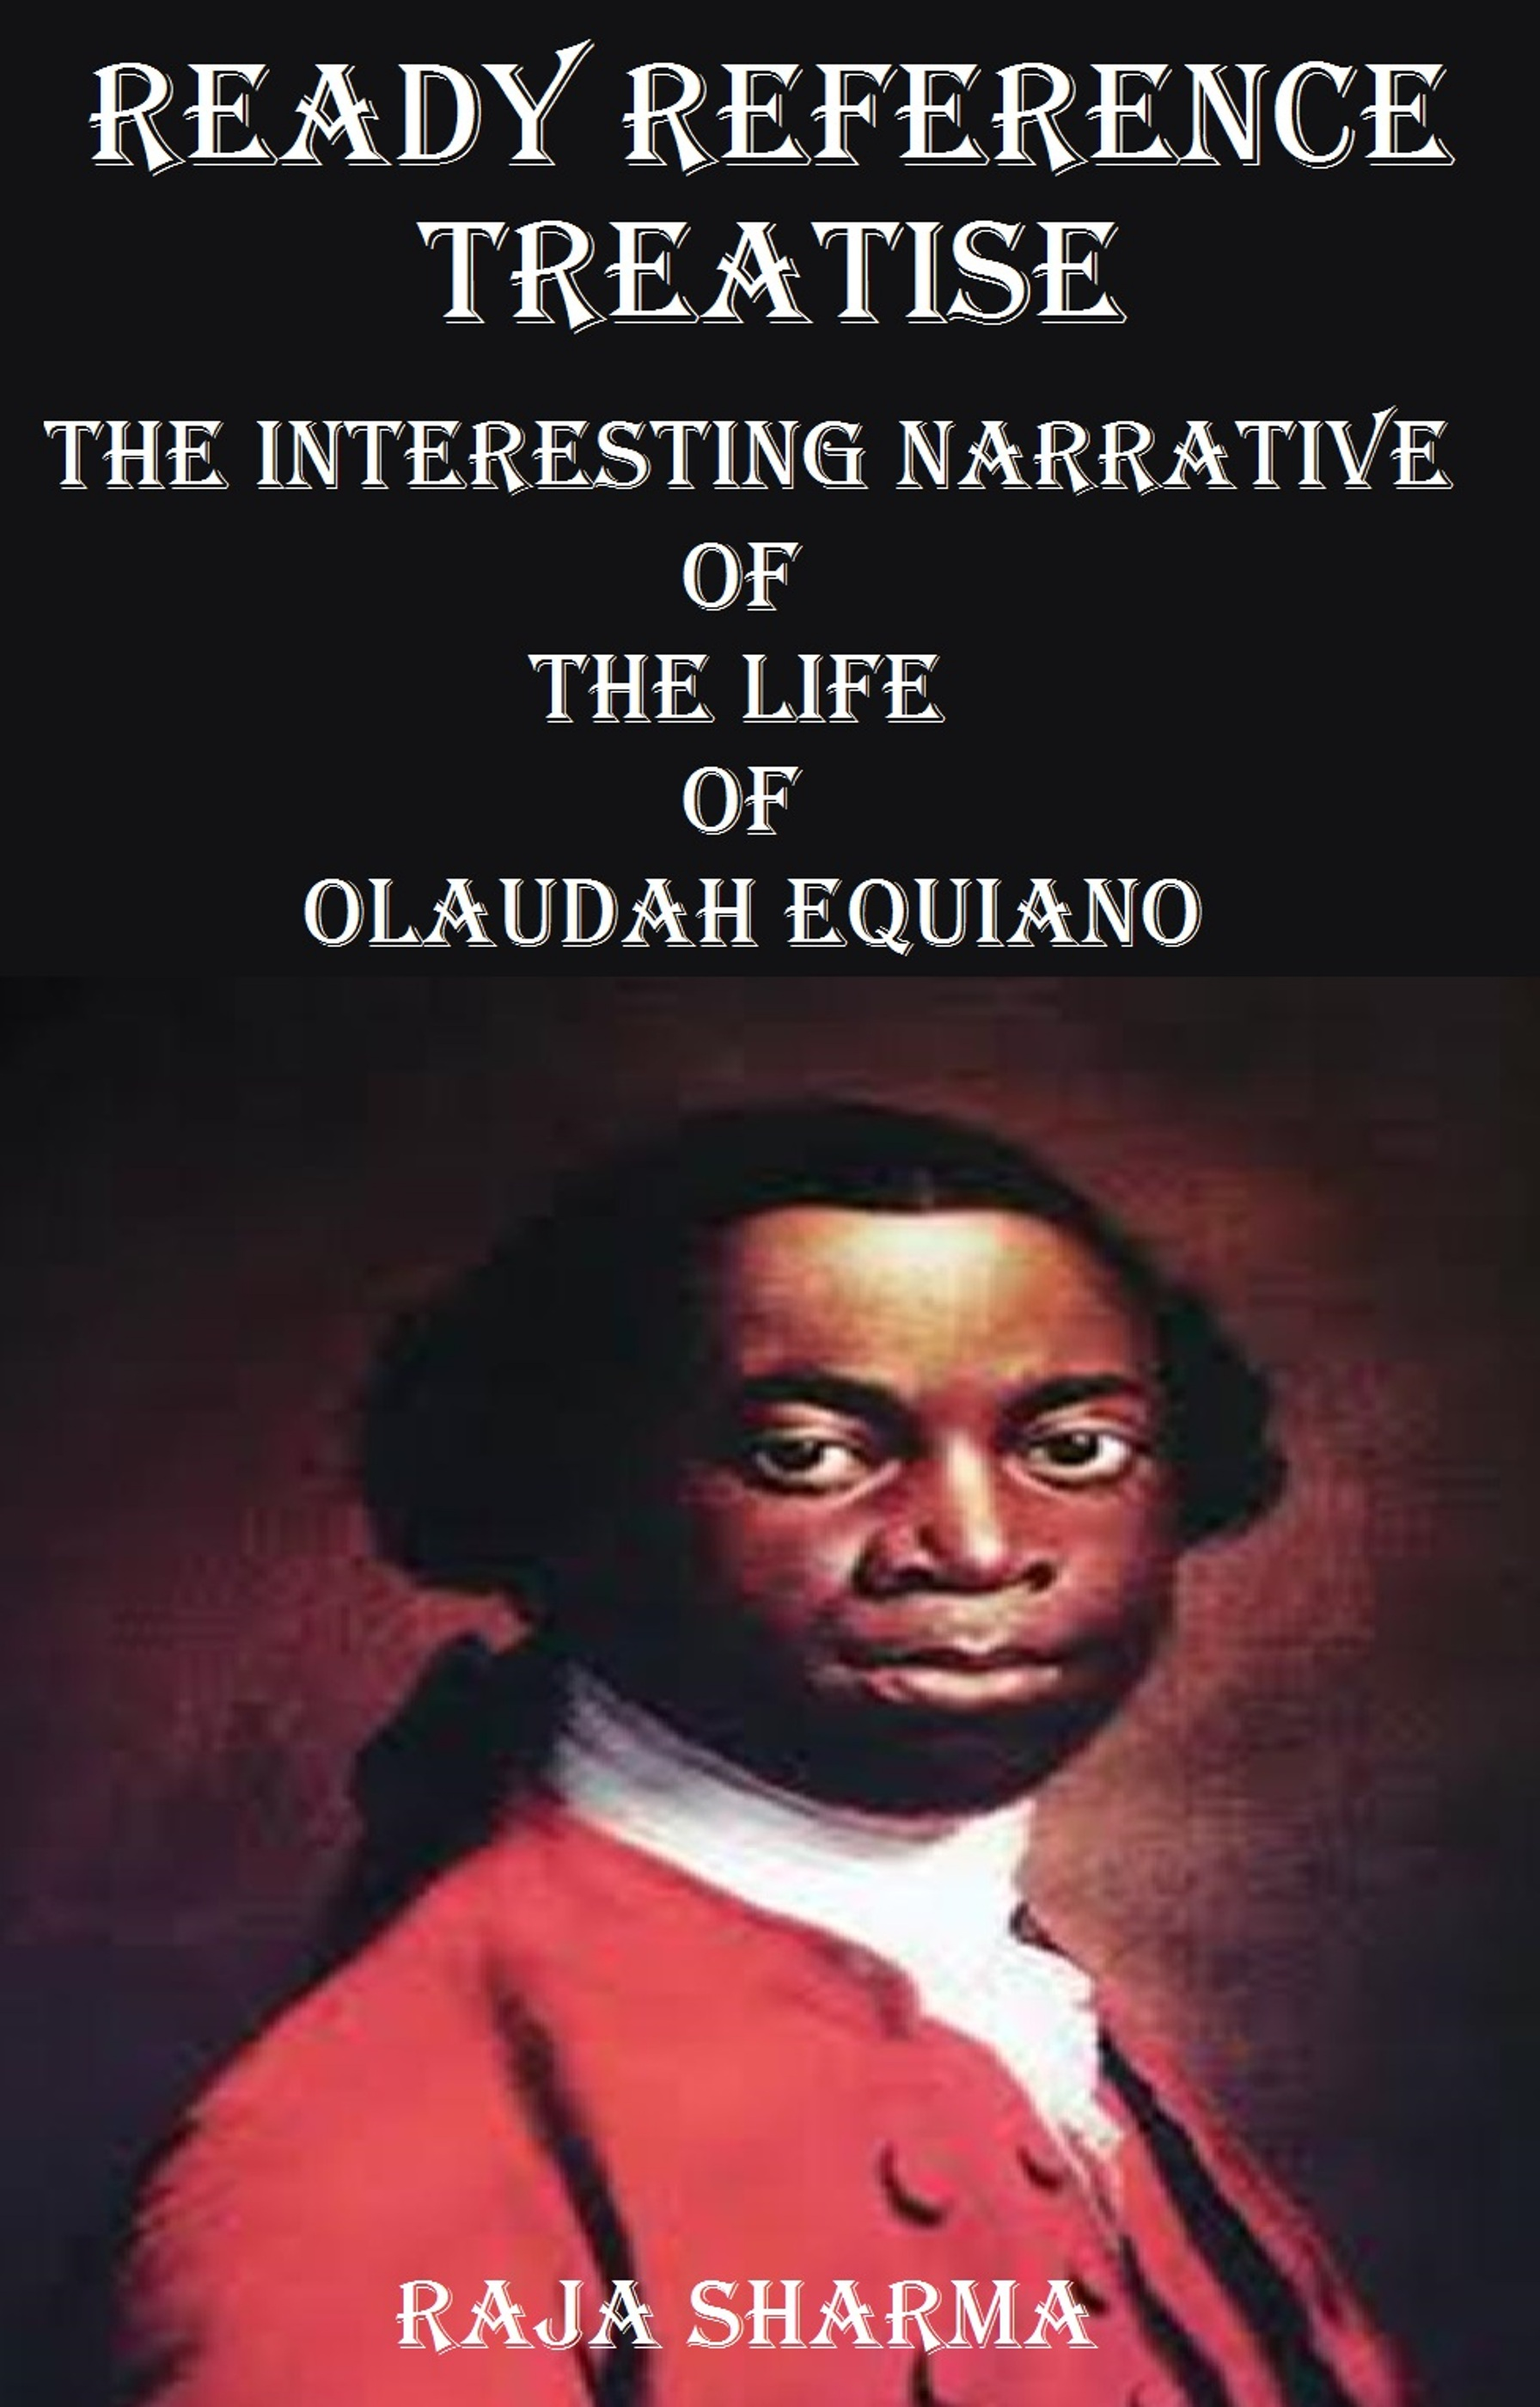 an interesting narrative of the life of olaudah equiano essay